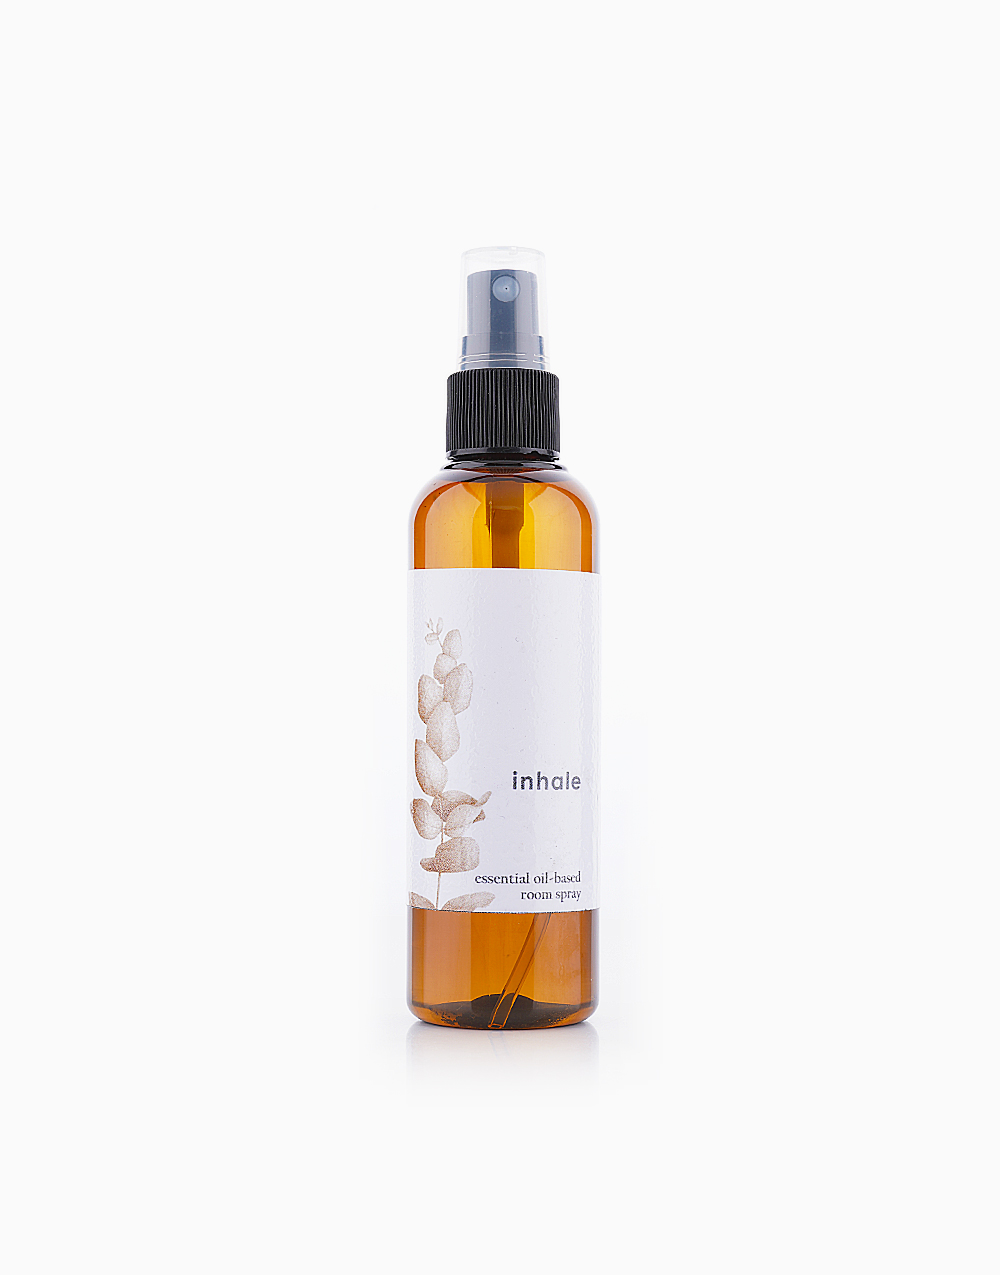 Inhale Natural (Essential Oil-Based) Room Spray (85ml) by Calyx Life & Home